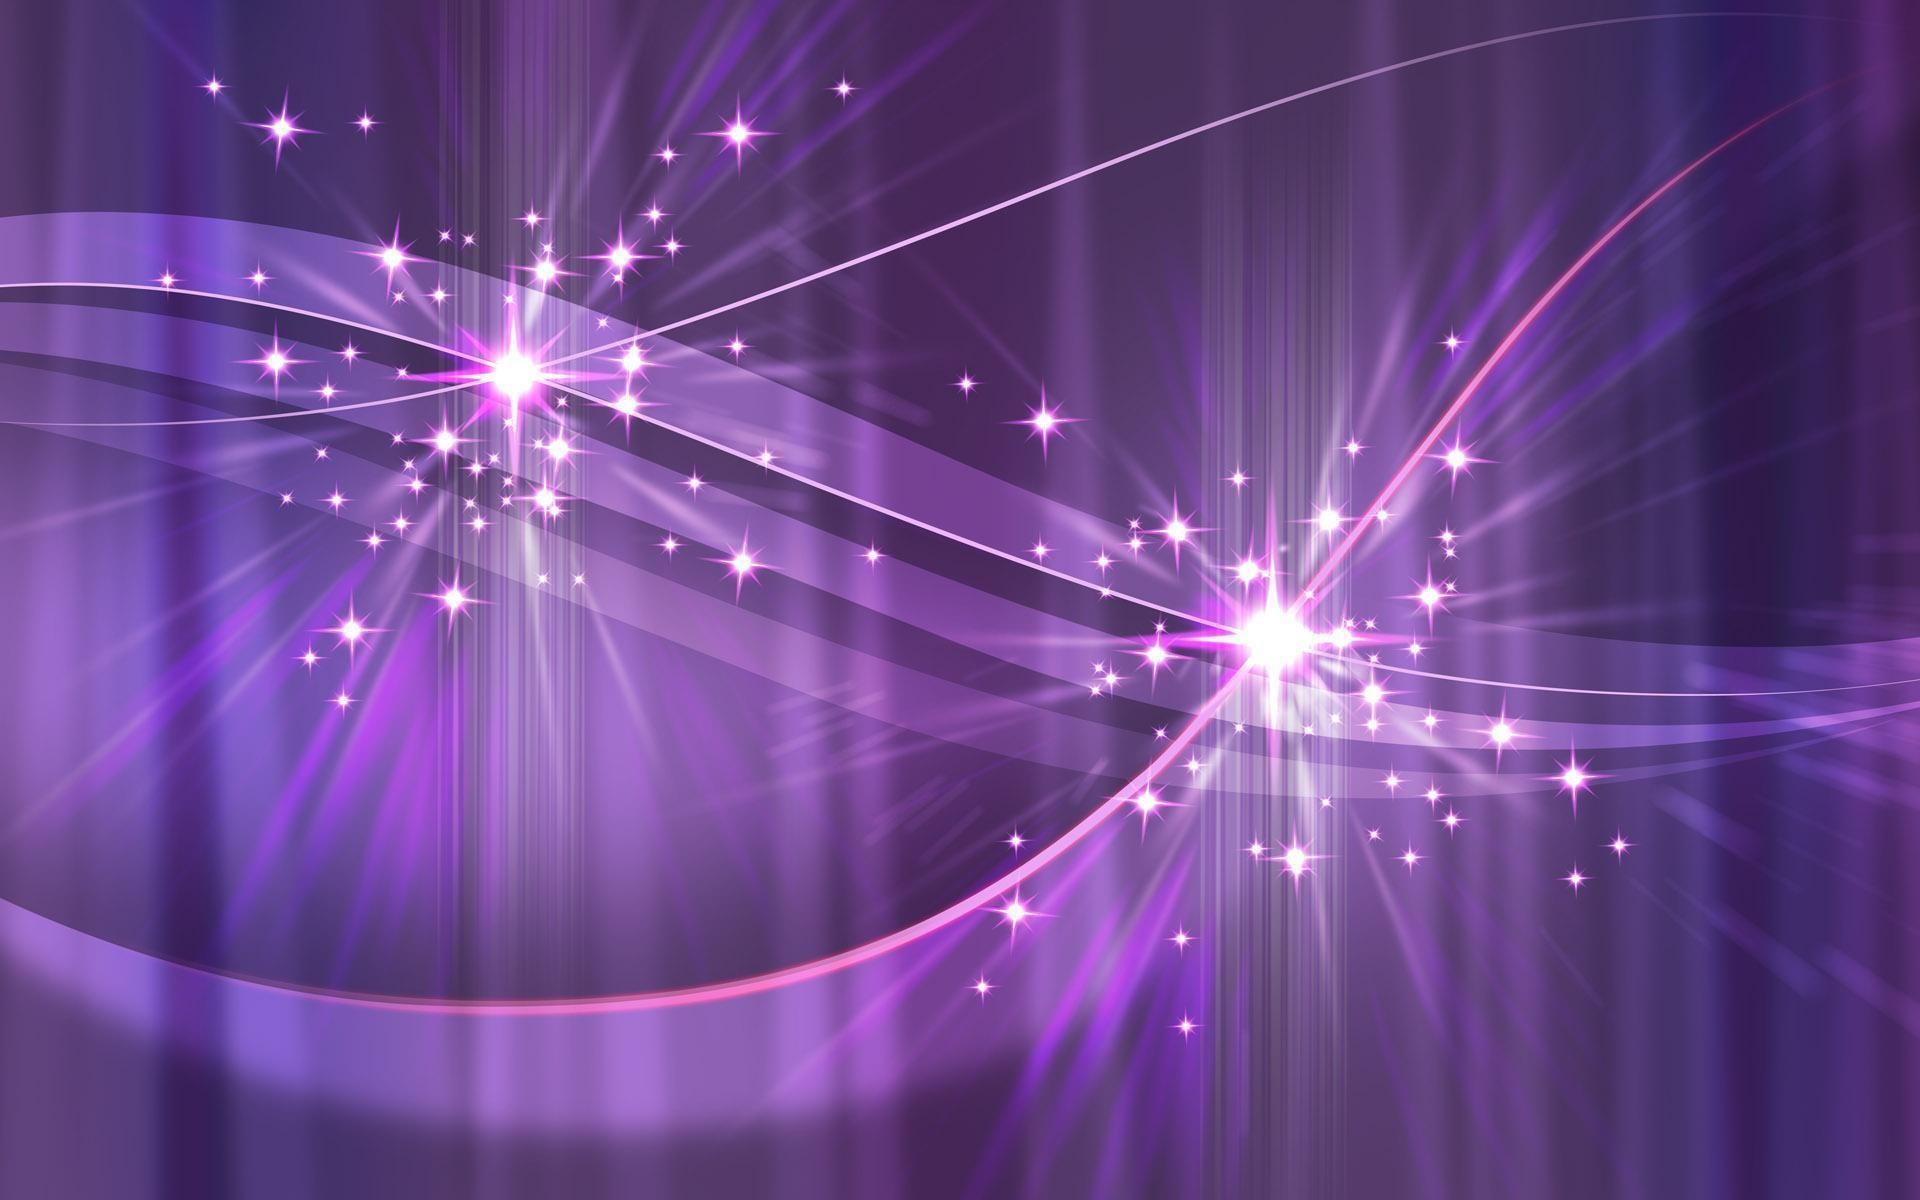 Res: 1920x1200, Abstract purple color : Desktop and mobile wallpaper : Wallippo